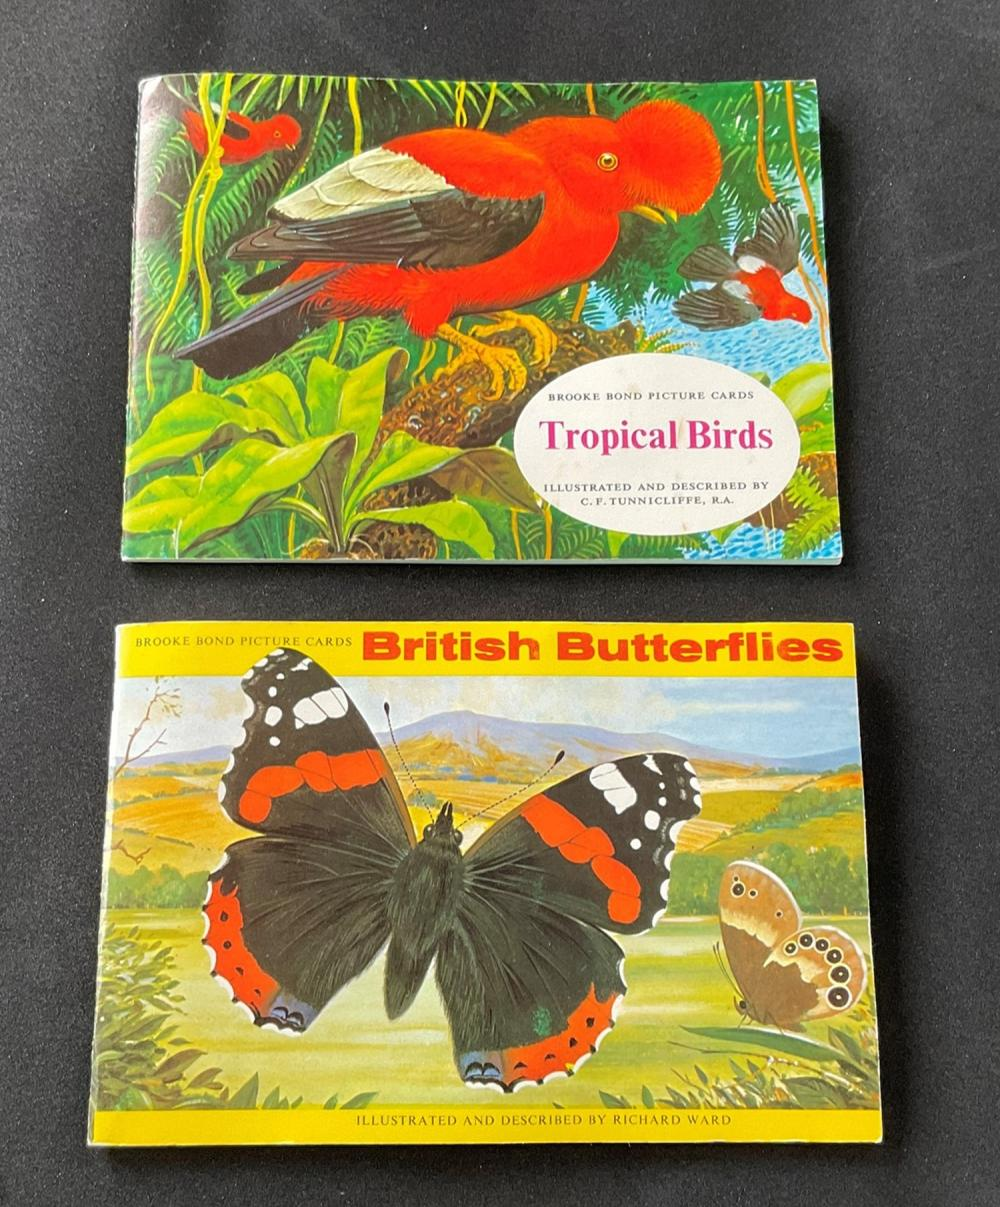 2 Albums of Brooke Bond Picture Cards, Tropical Birds, British Butterflies. Good condition. We